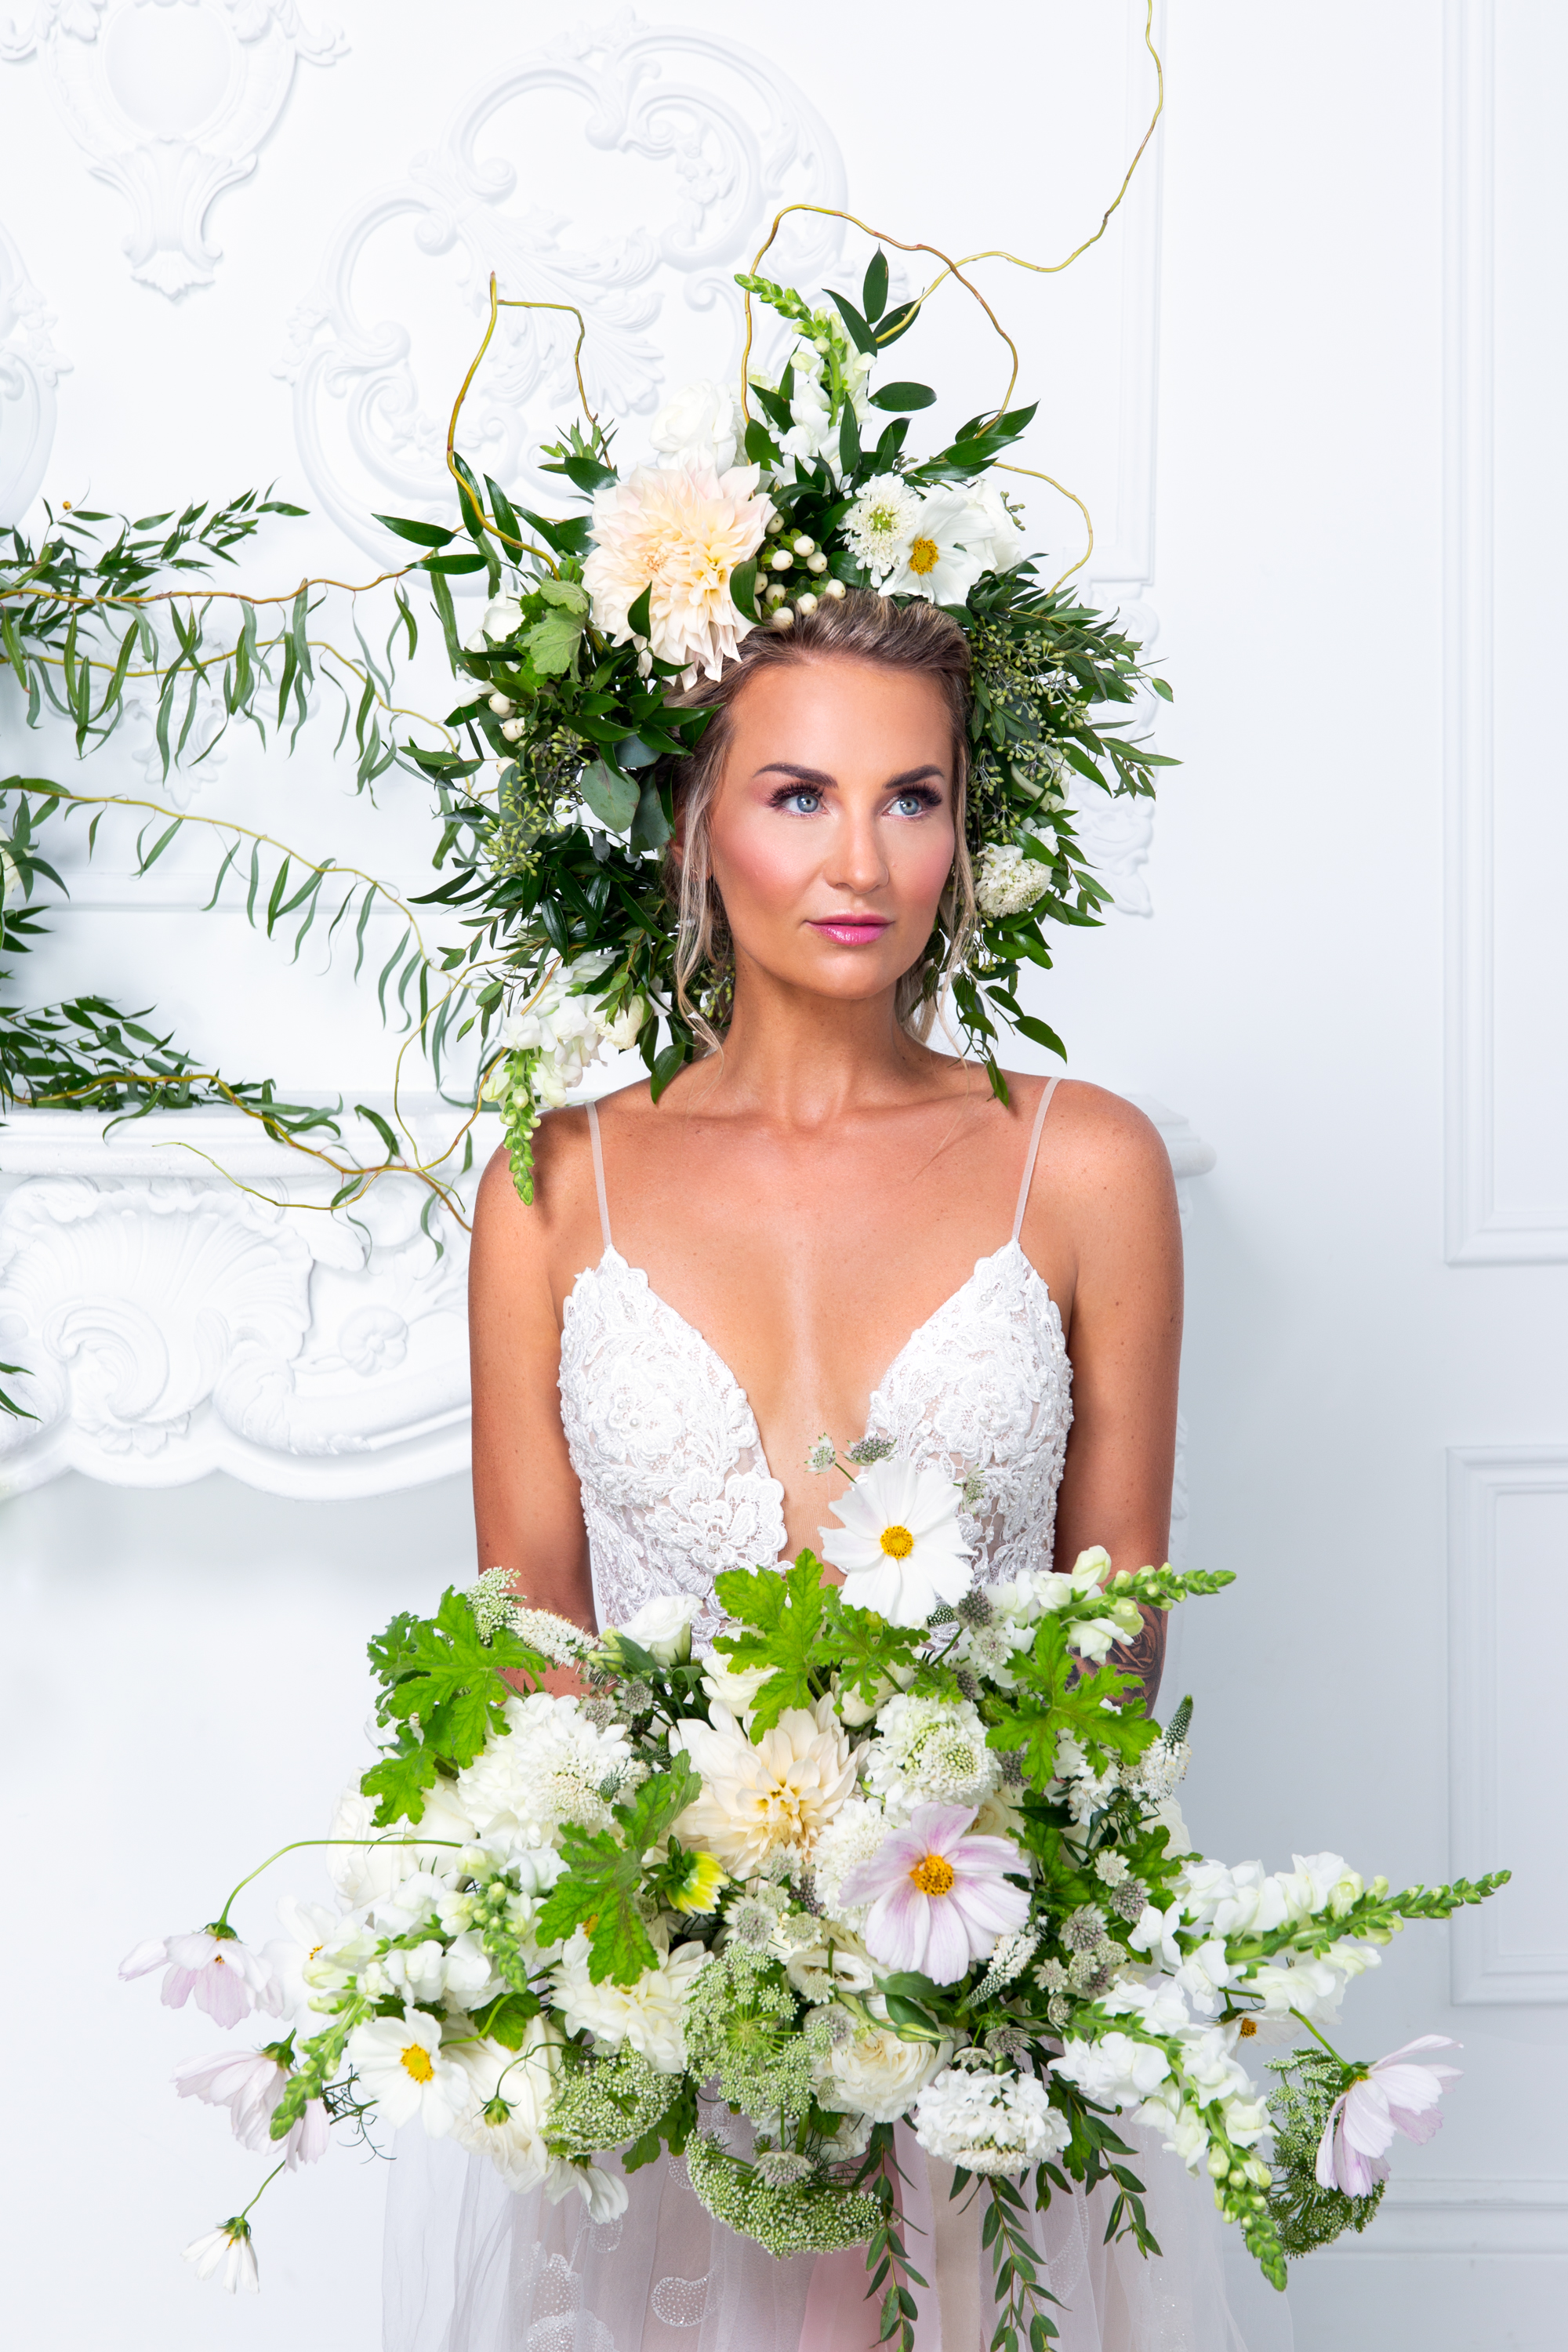 Flower Crown Acro Buddhas Bride Movement In Love Styled Wedding Zsuzsi Pal Photography